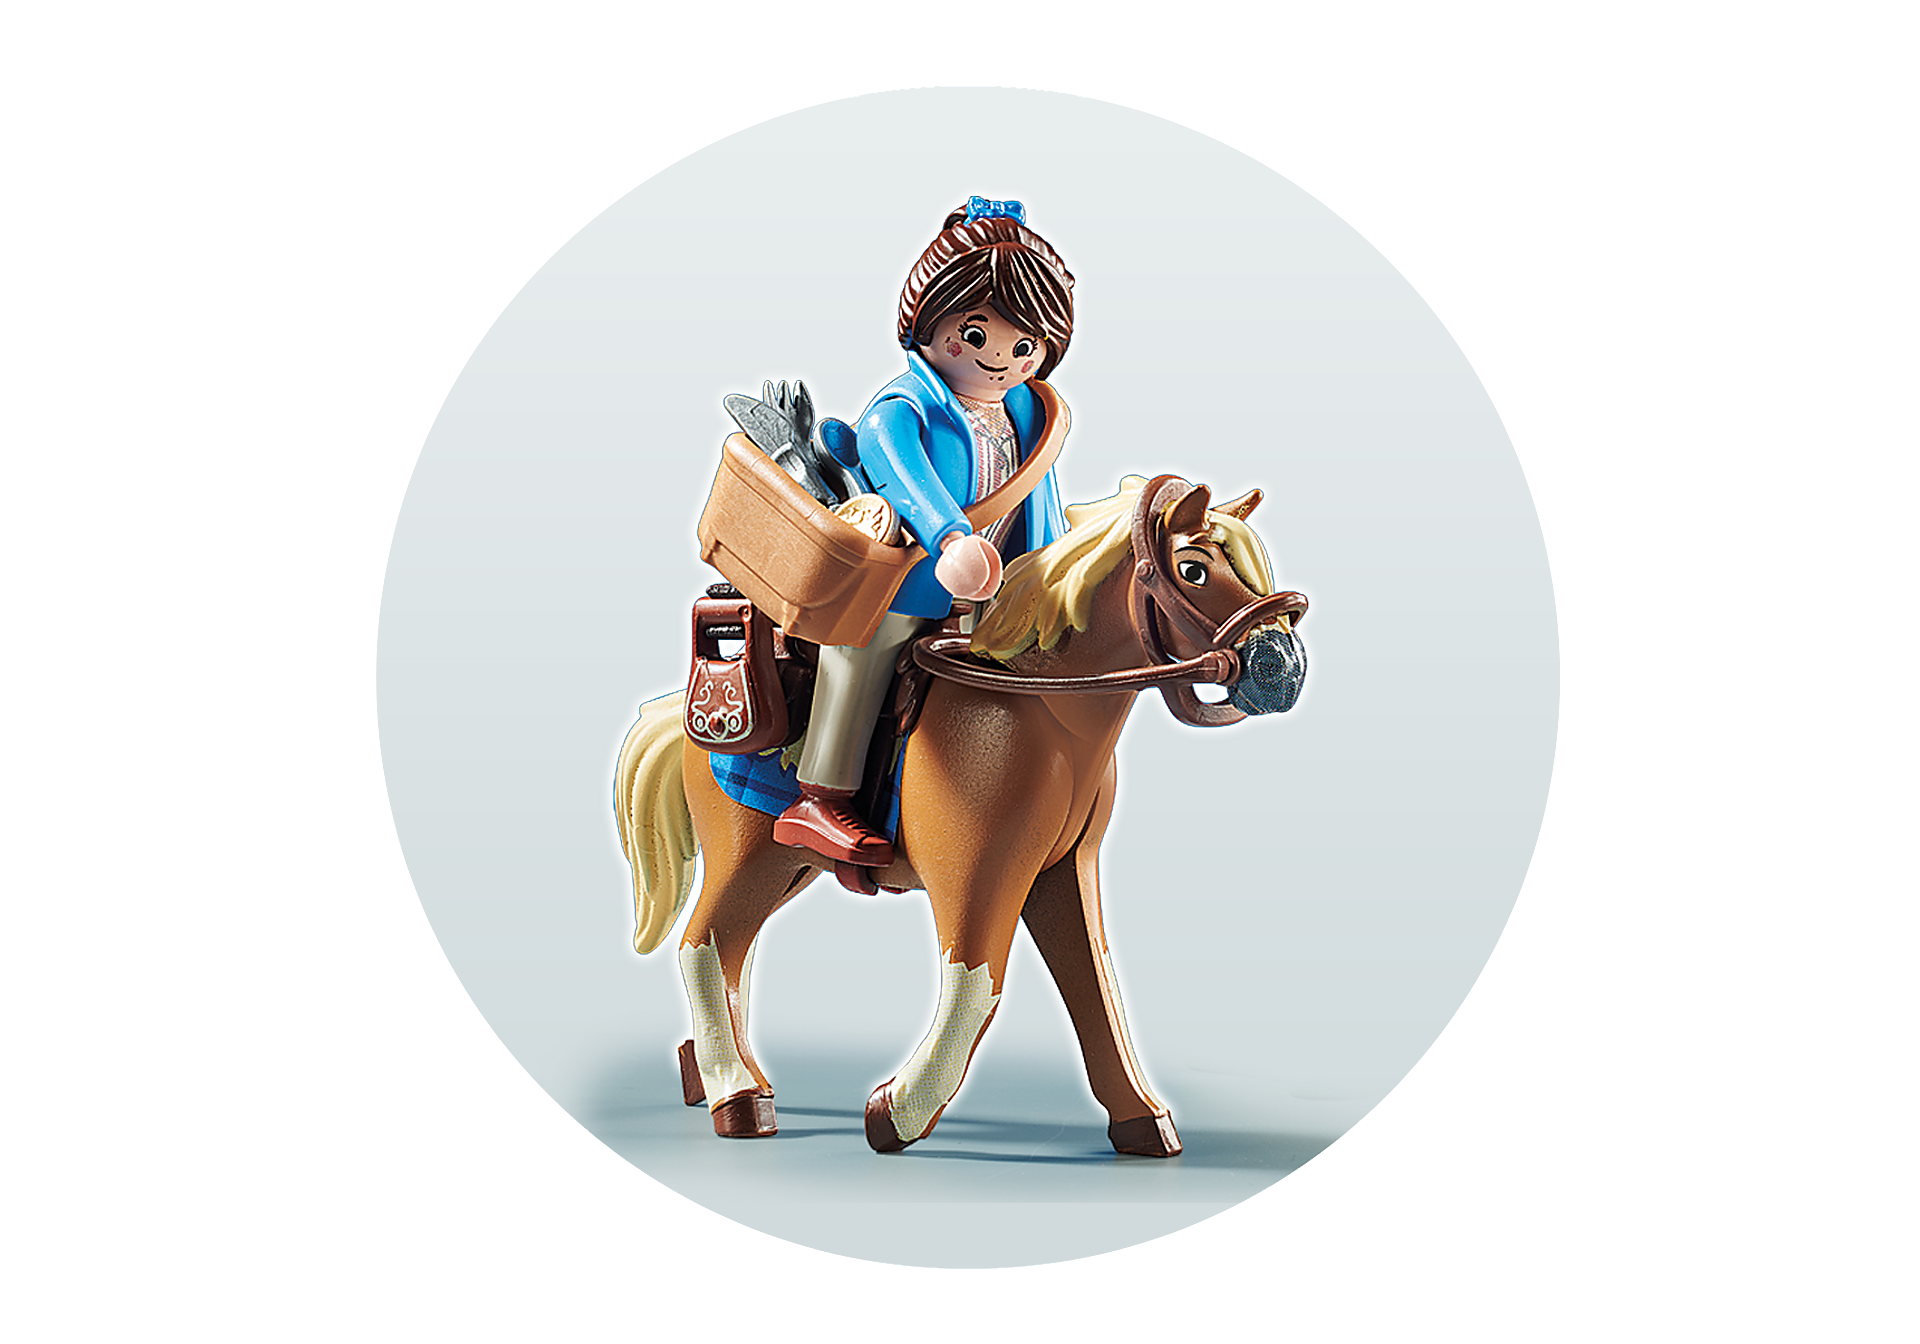 http://media.playmobil.com/i/playmobil/70072_product_extra1/PLAYMOBIL: THE MOVIE Marla avec cheval